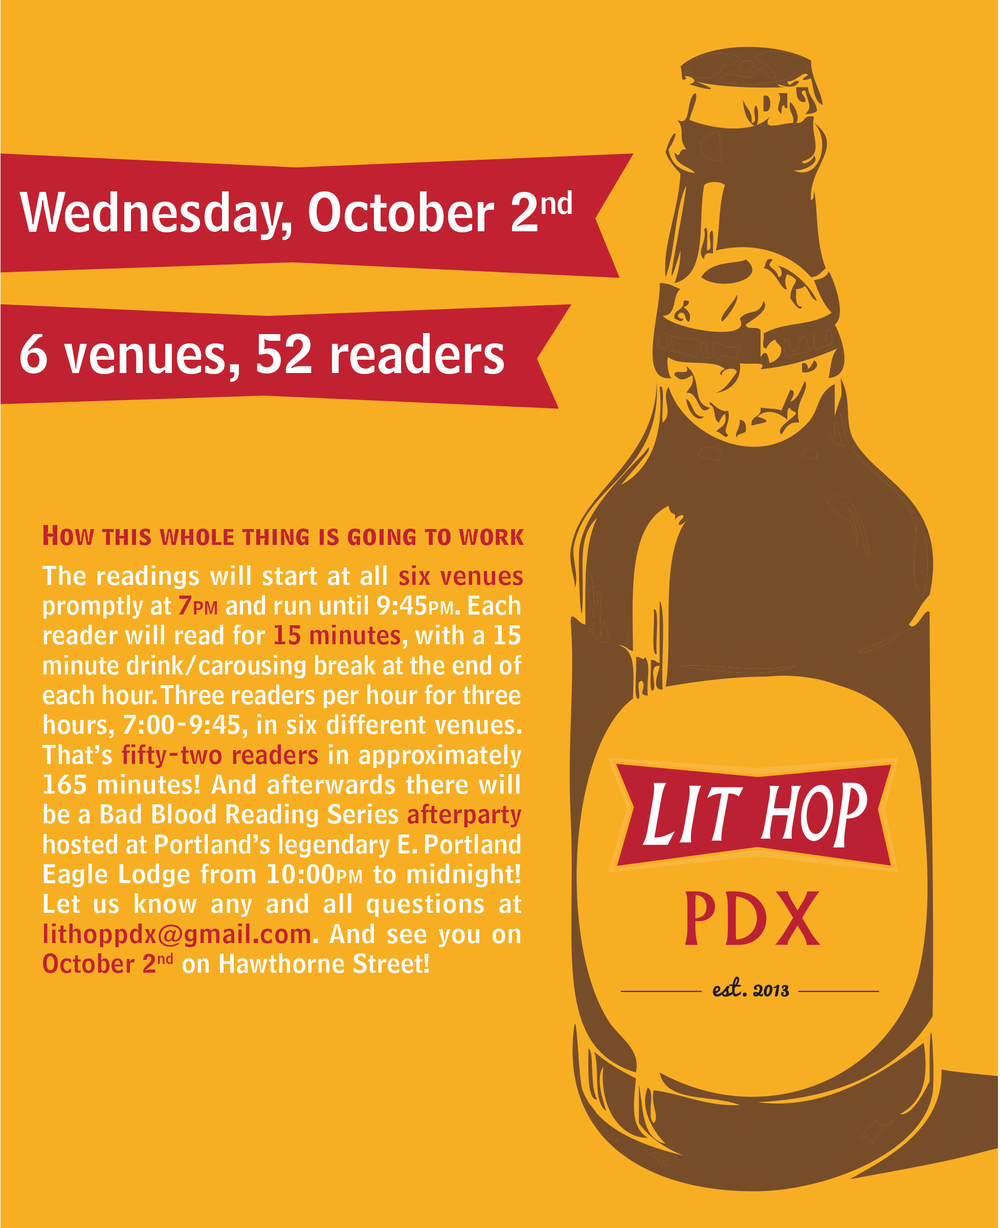 Promotional poster for first annual LitHop PDX